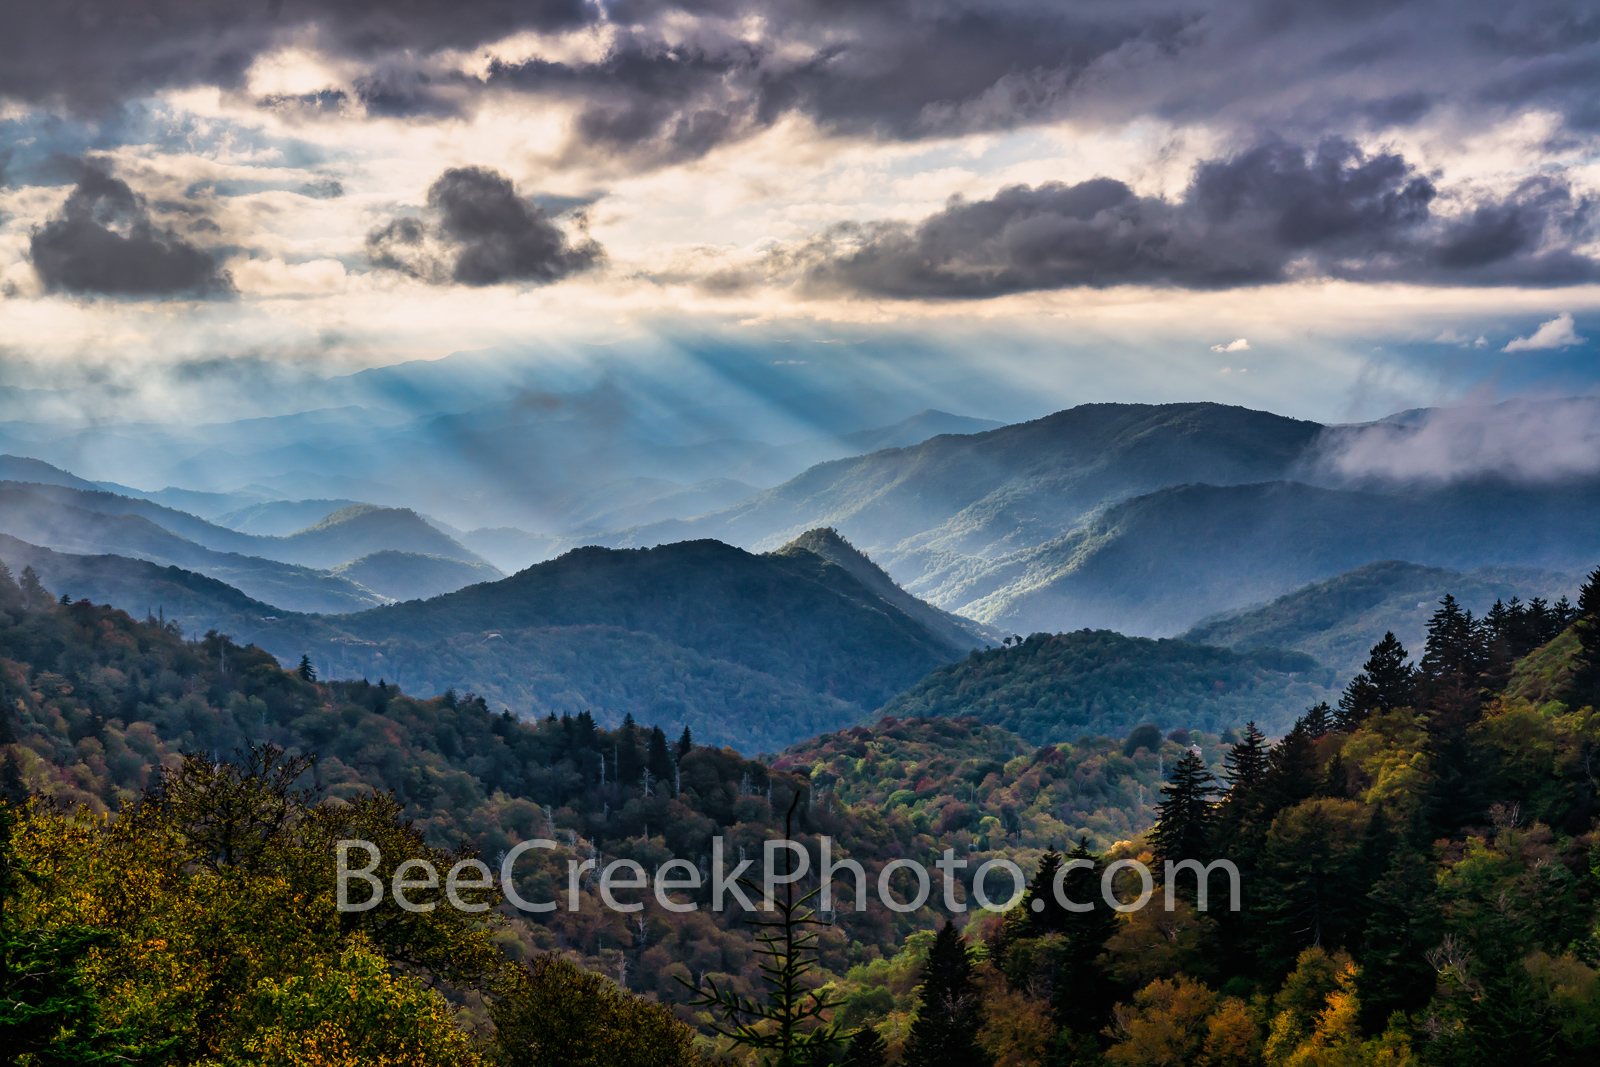 blue ridge mountains, blue ridge parkway, great smoky national park, smoky mountains, ridges, peaks, fall, colors, mountains, north carolina, nc, tennessee, appalachian mountains, sunrays, clouds, , photo